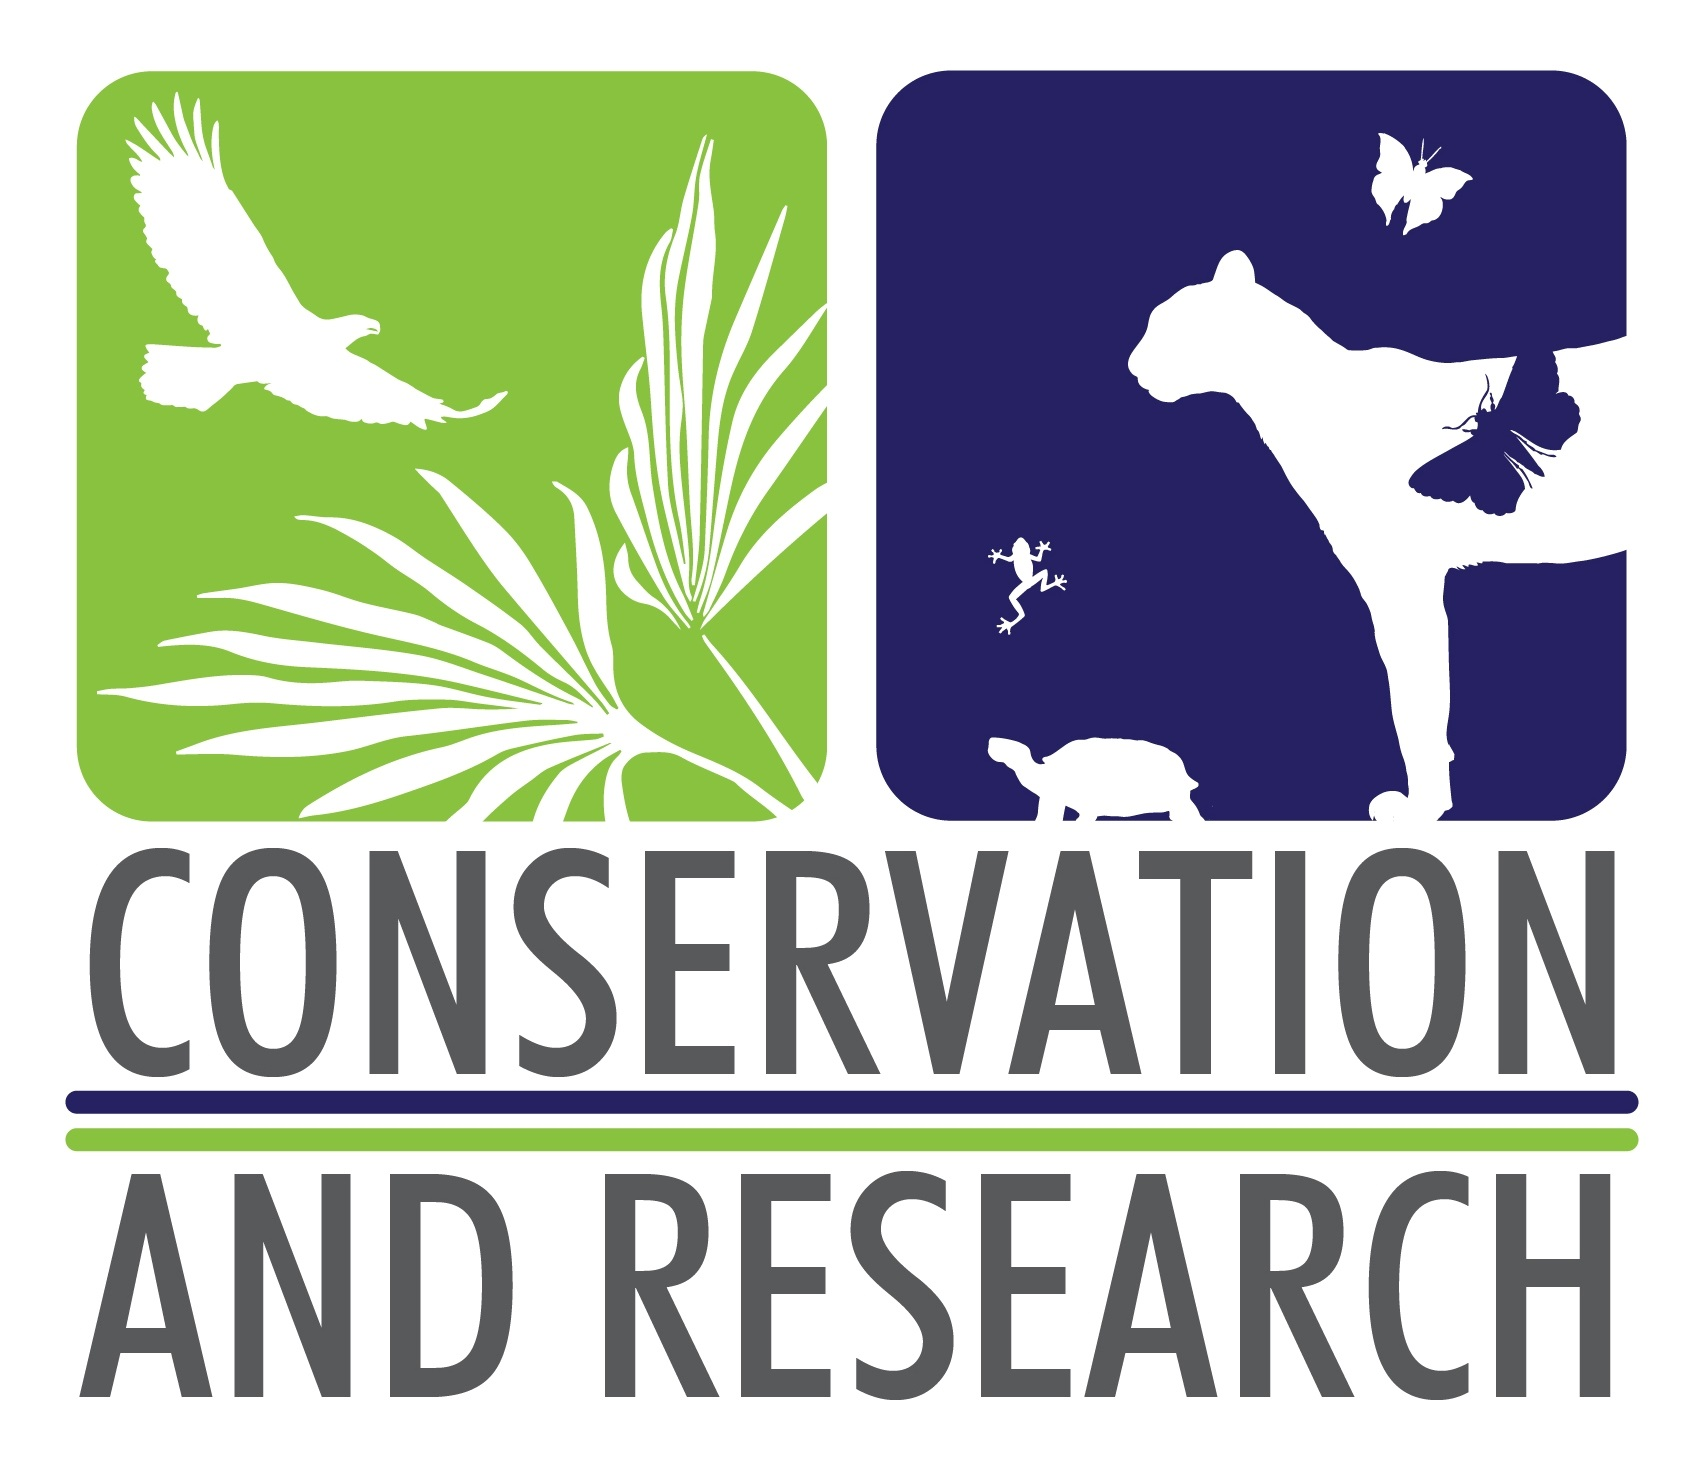 Conservation and research logo